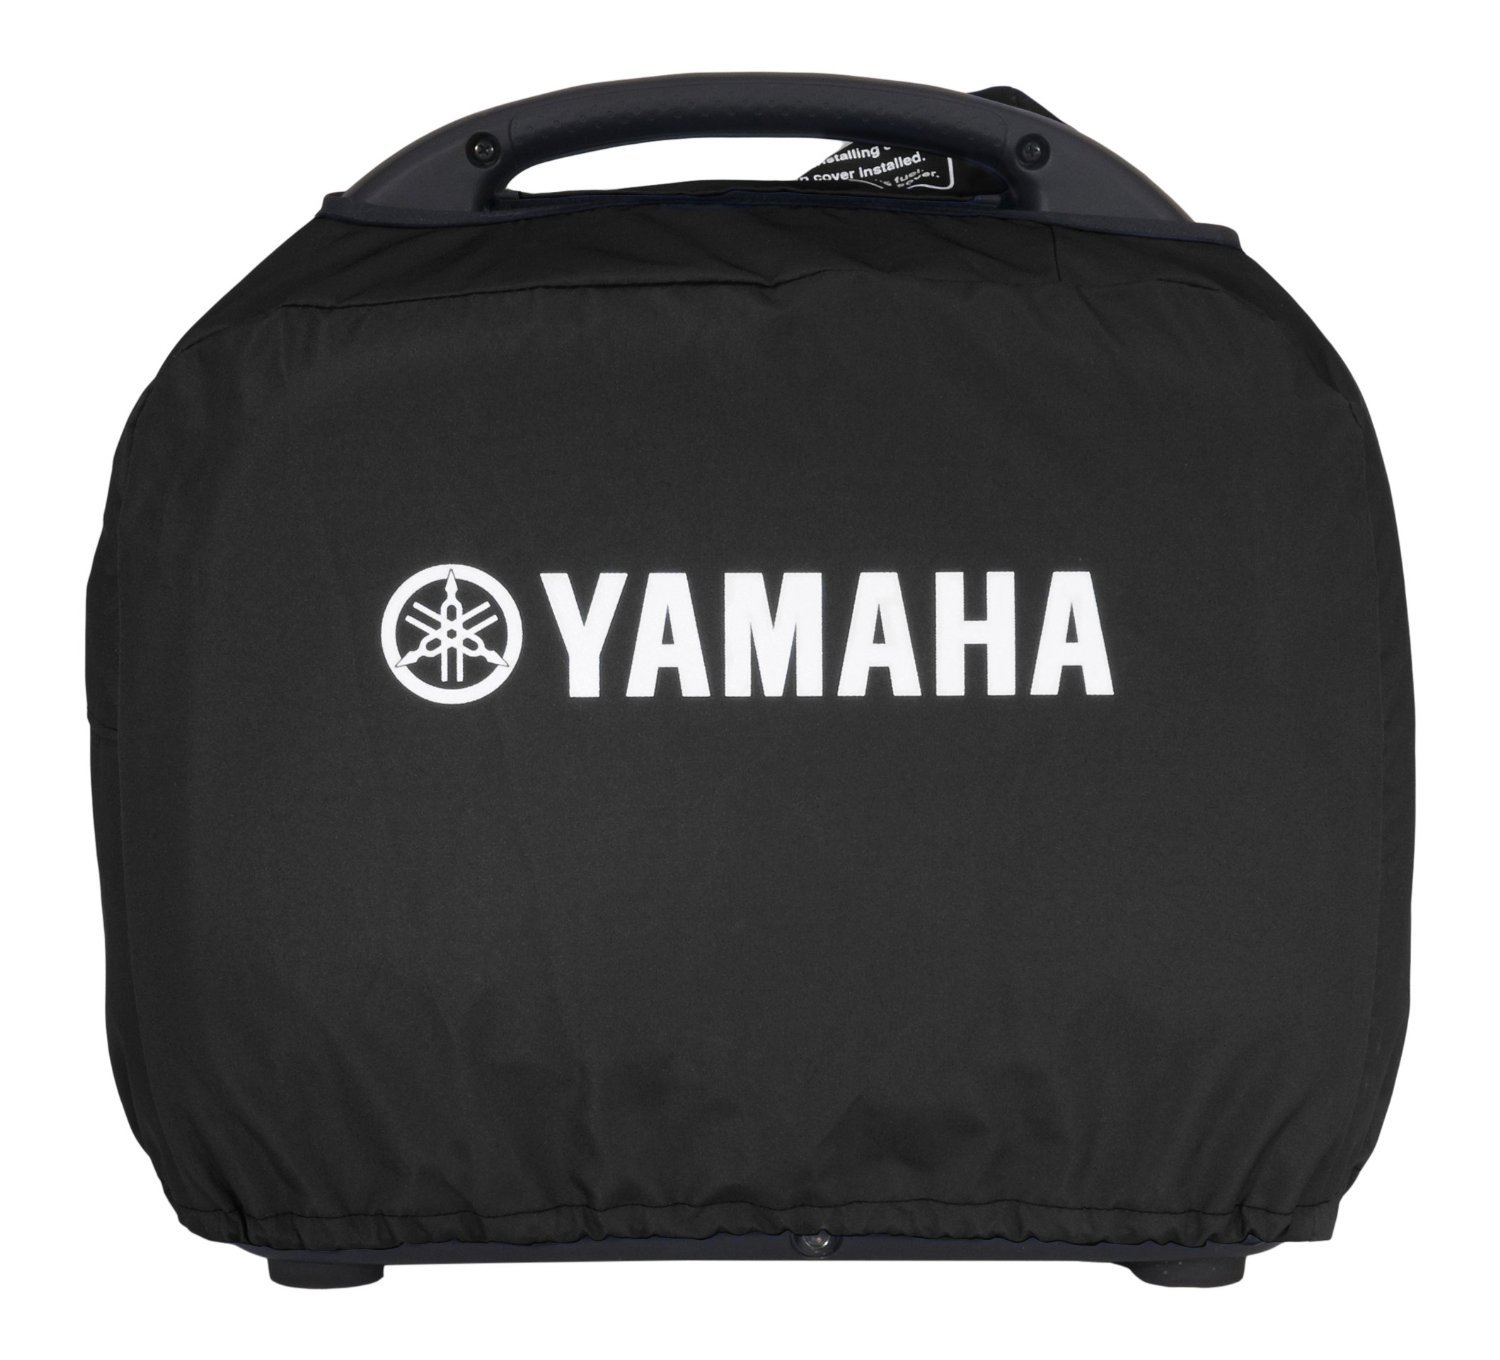 YAMAHA ACC-GNCVR-20-01 Generator Cover for Models EF2000iS by YAMAHA